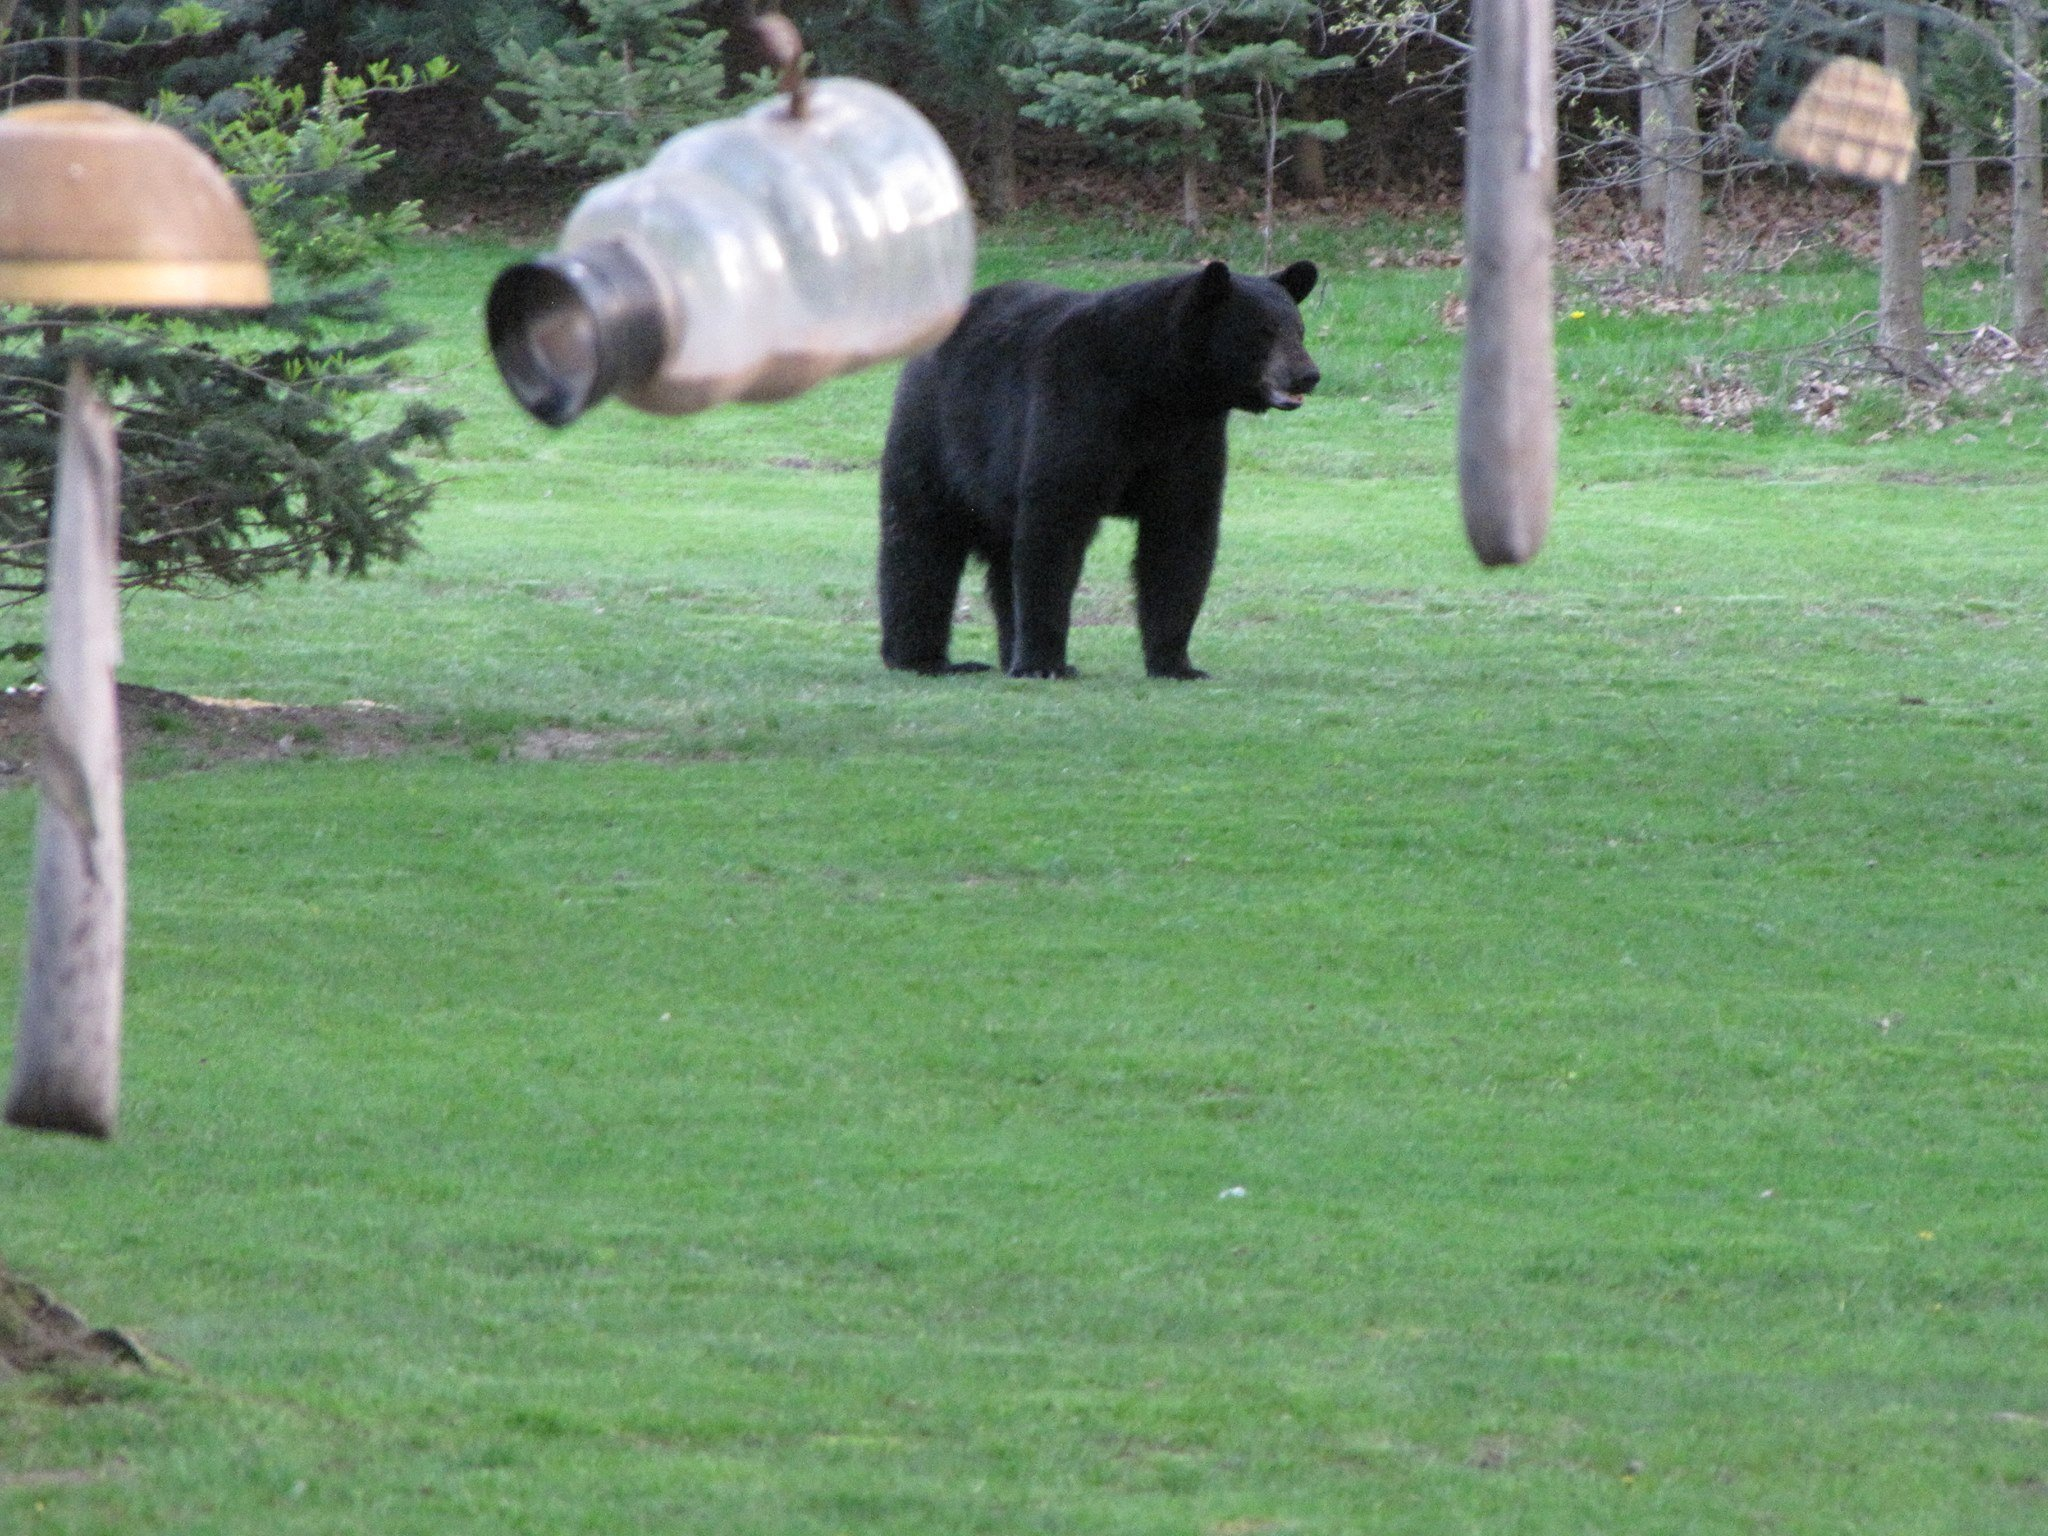 Bear in Liberty Township, courtesy of Liberty Police Department Facebook